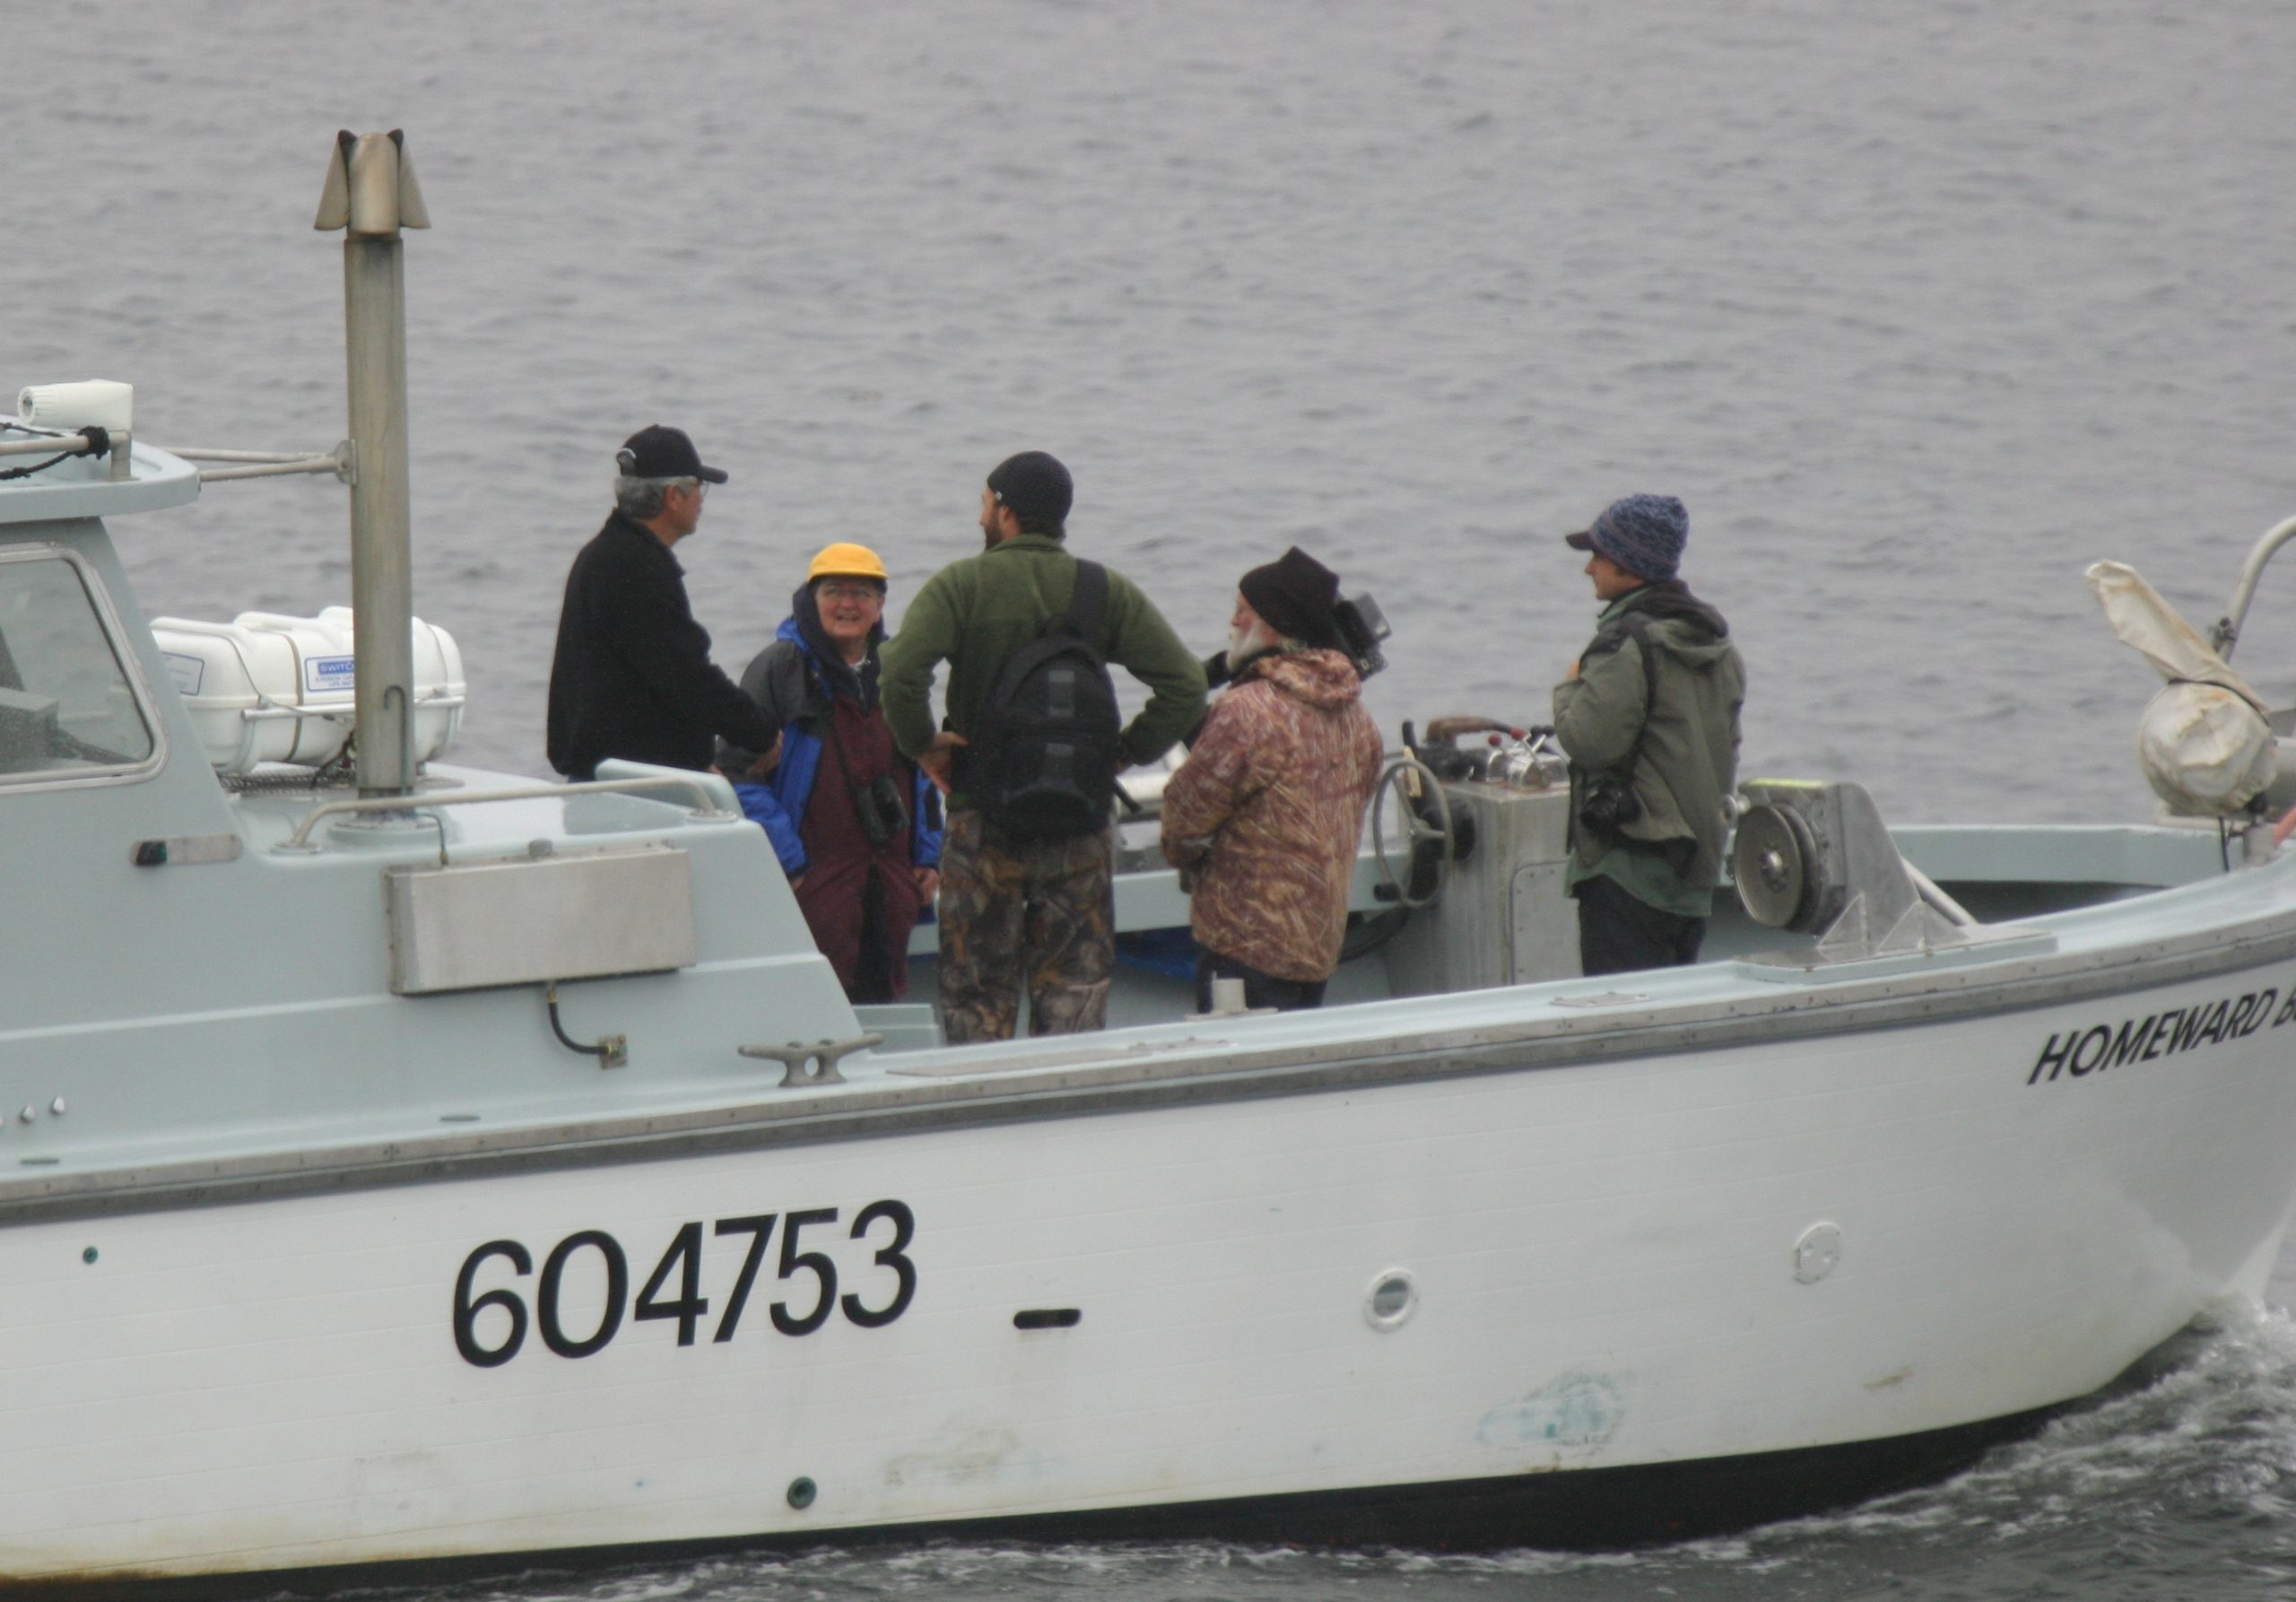 Homeward Bound heading out to the auklets, May 30, 2007, (Left to right) Al Giddings, Barb, Nick, Tim, John.